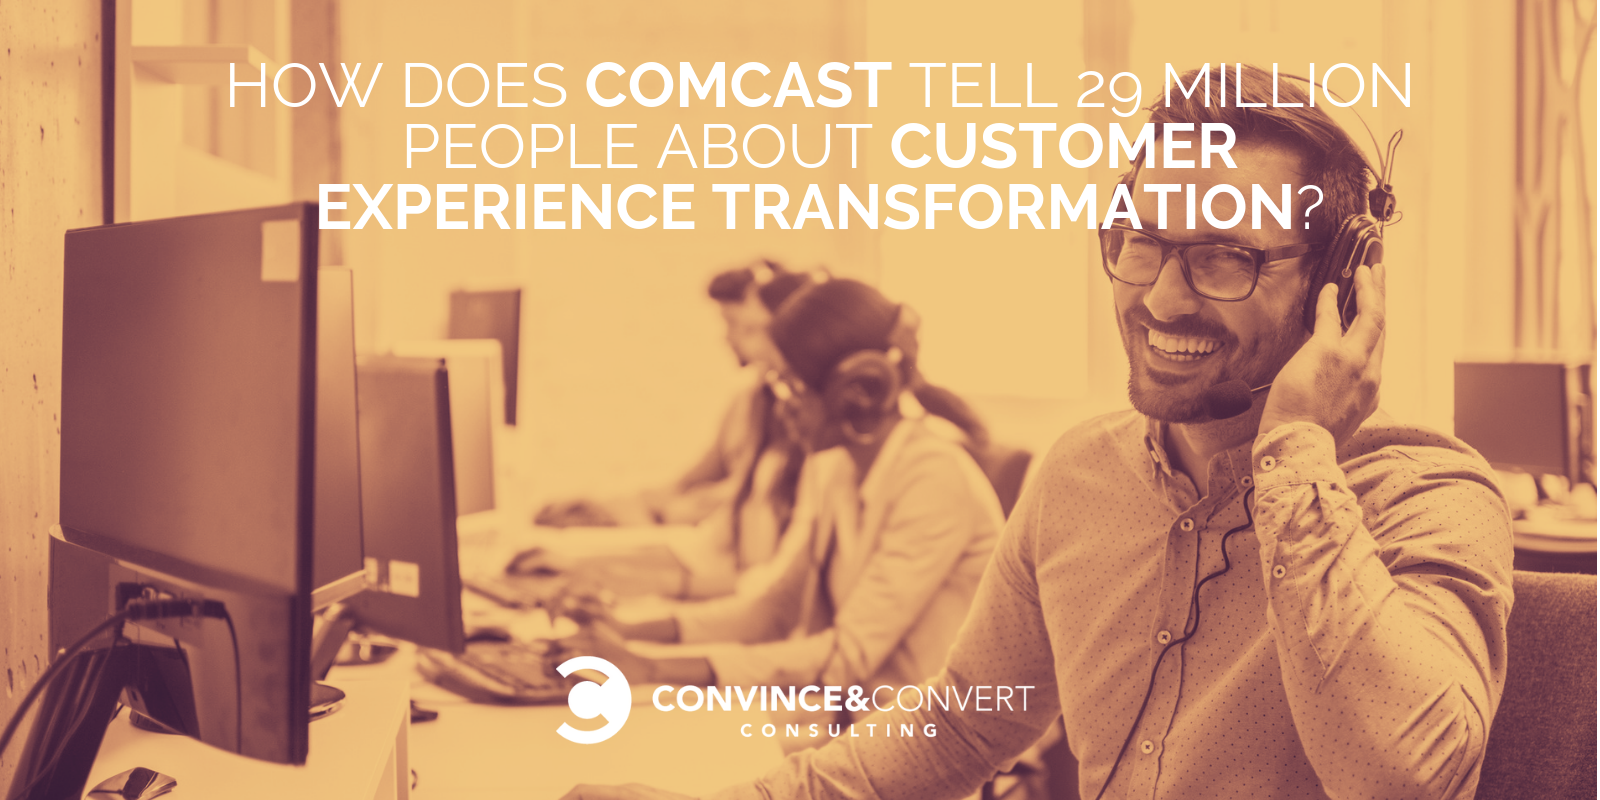 Comcast customer experience transformation